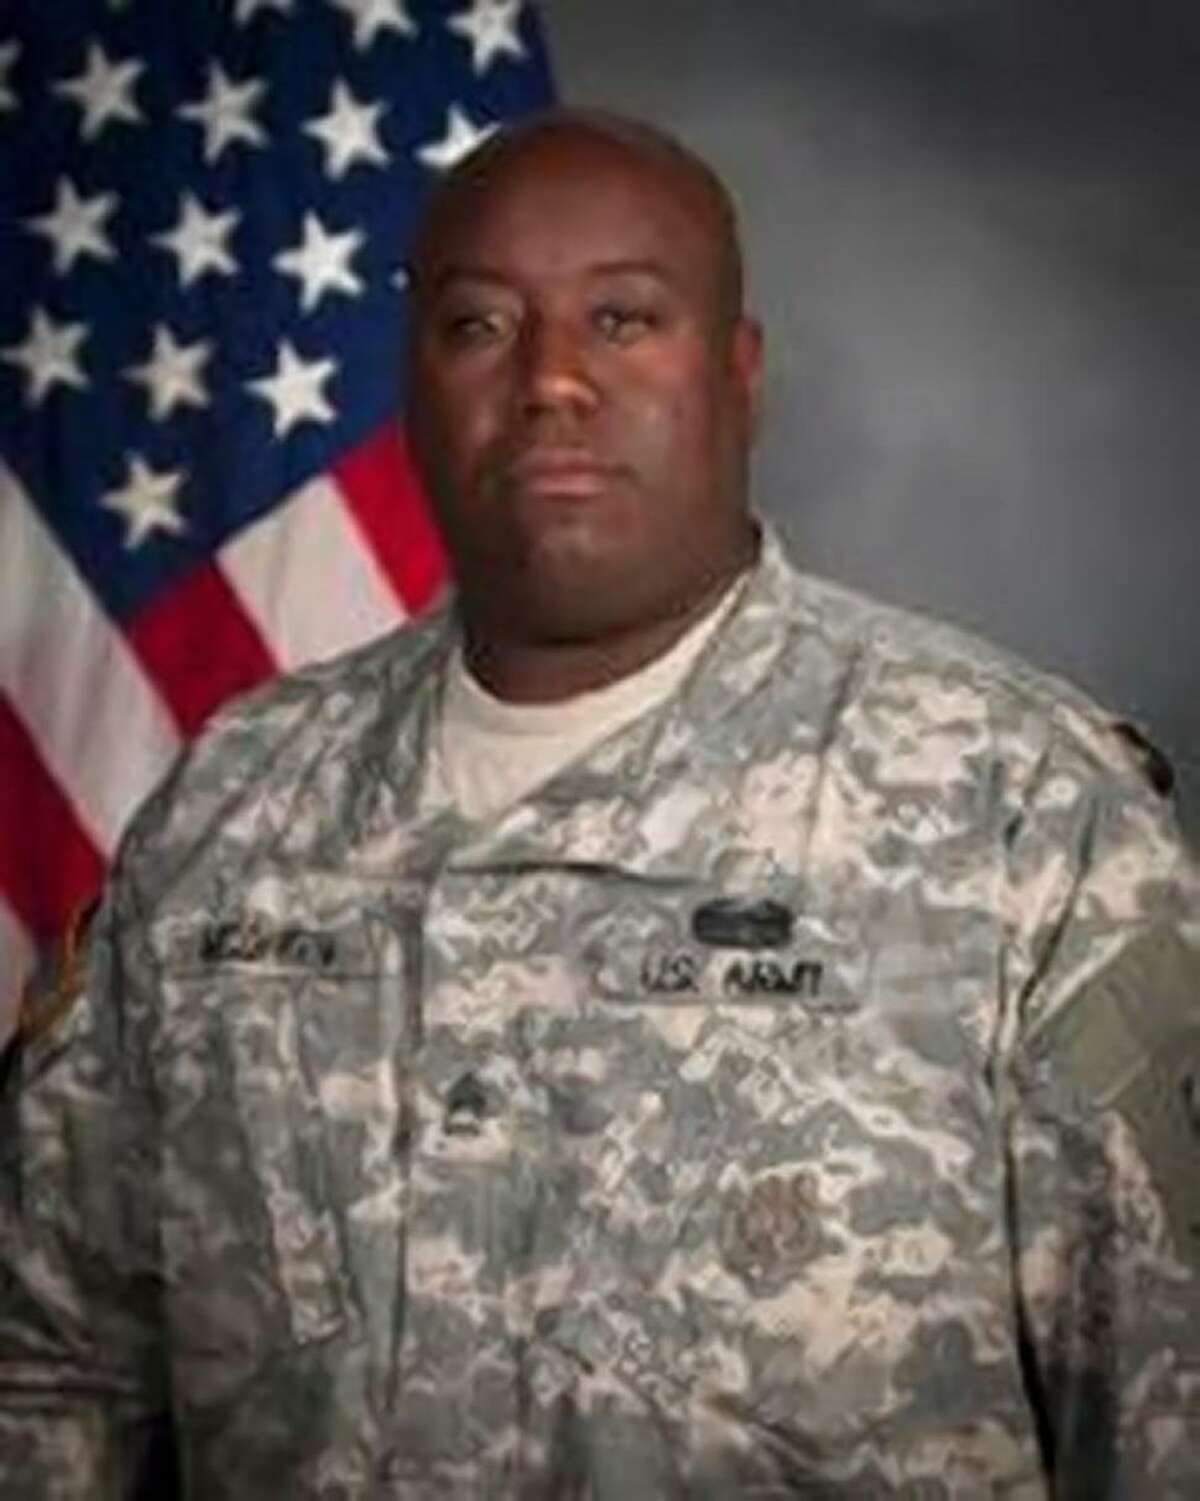 Sgt. 1st Class Gregory McQueen*Editor's Note: An earlier version of this story included photos of a person that is not McQueen. A Fort Hood liaison misidentified Sgt. 1st Class Gregory McQueen to journalists gathered prior to the hearing for the non-commissioned officer.